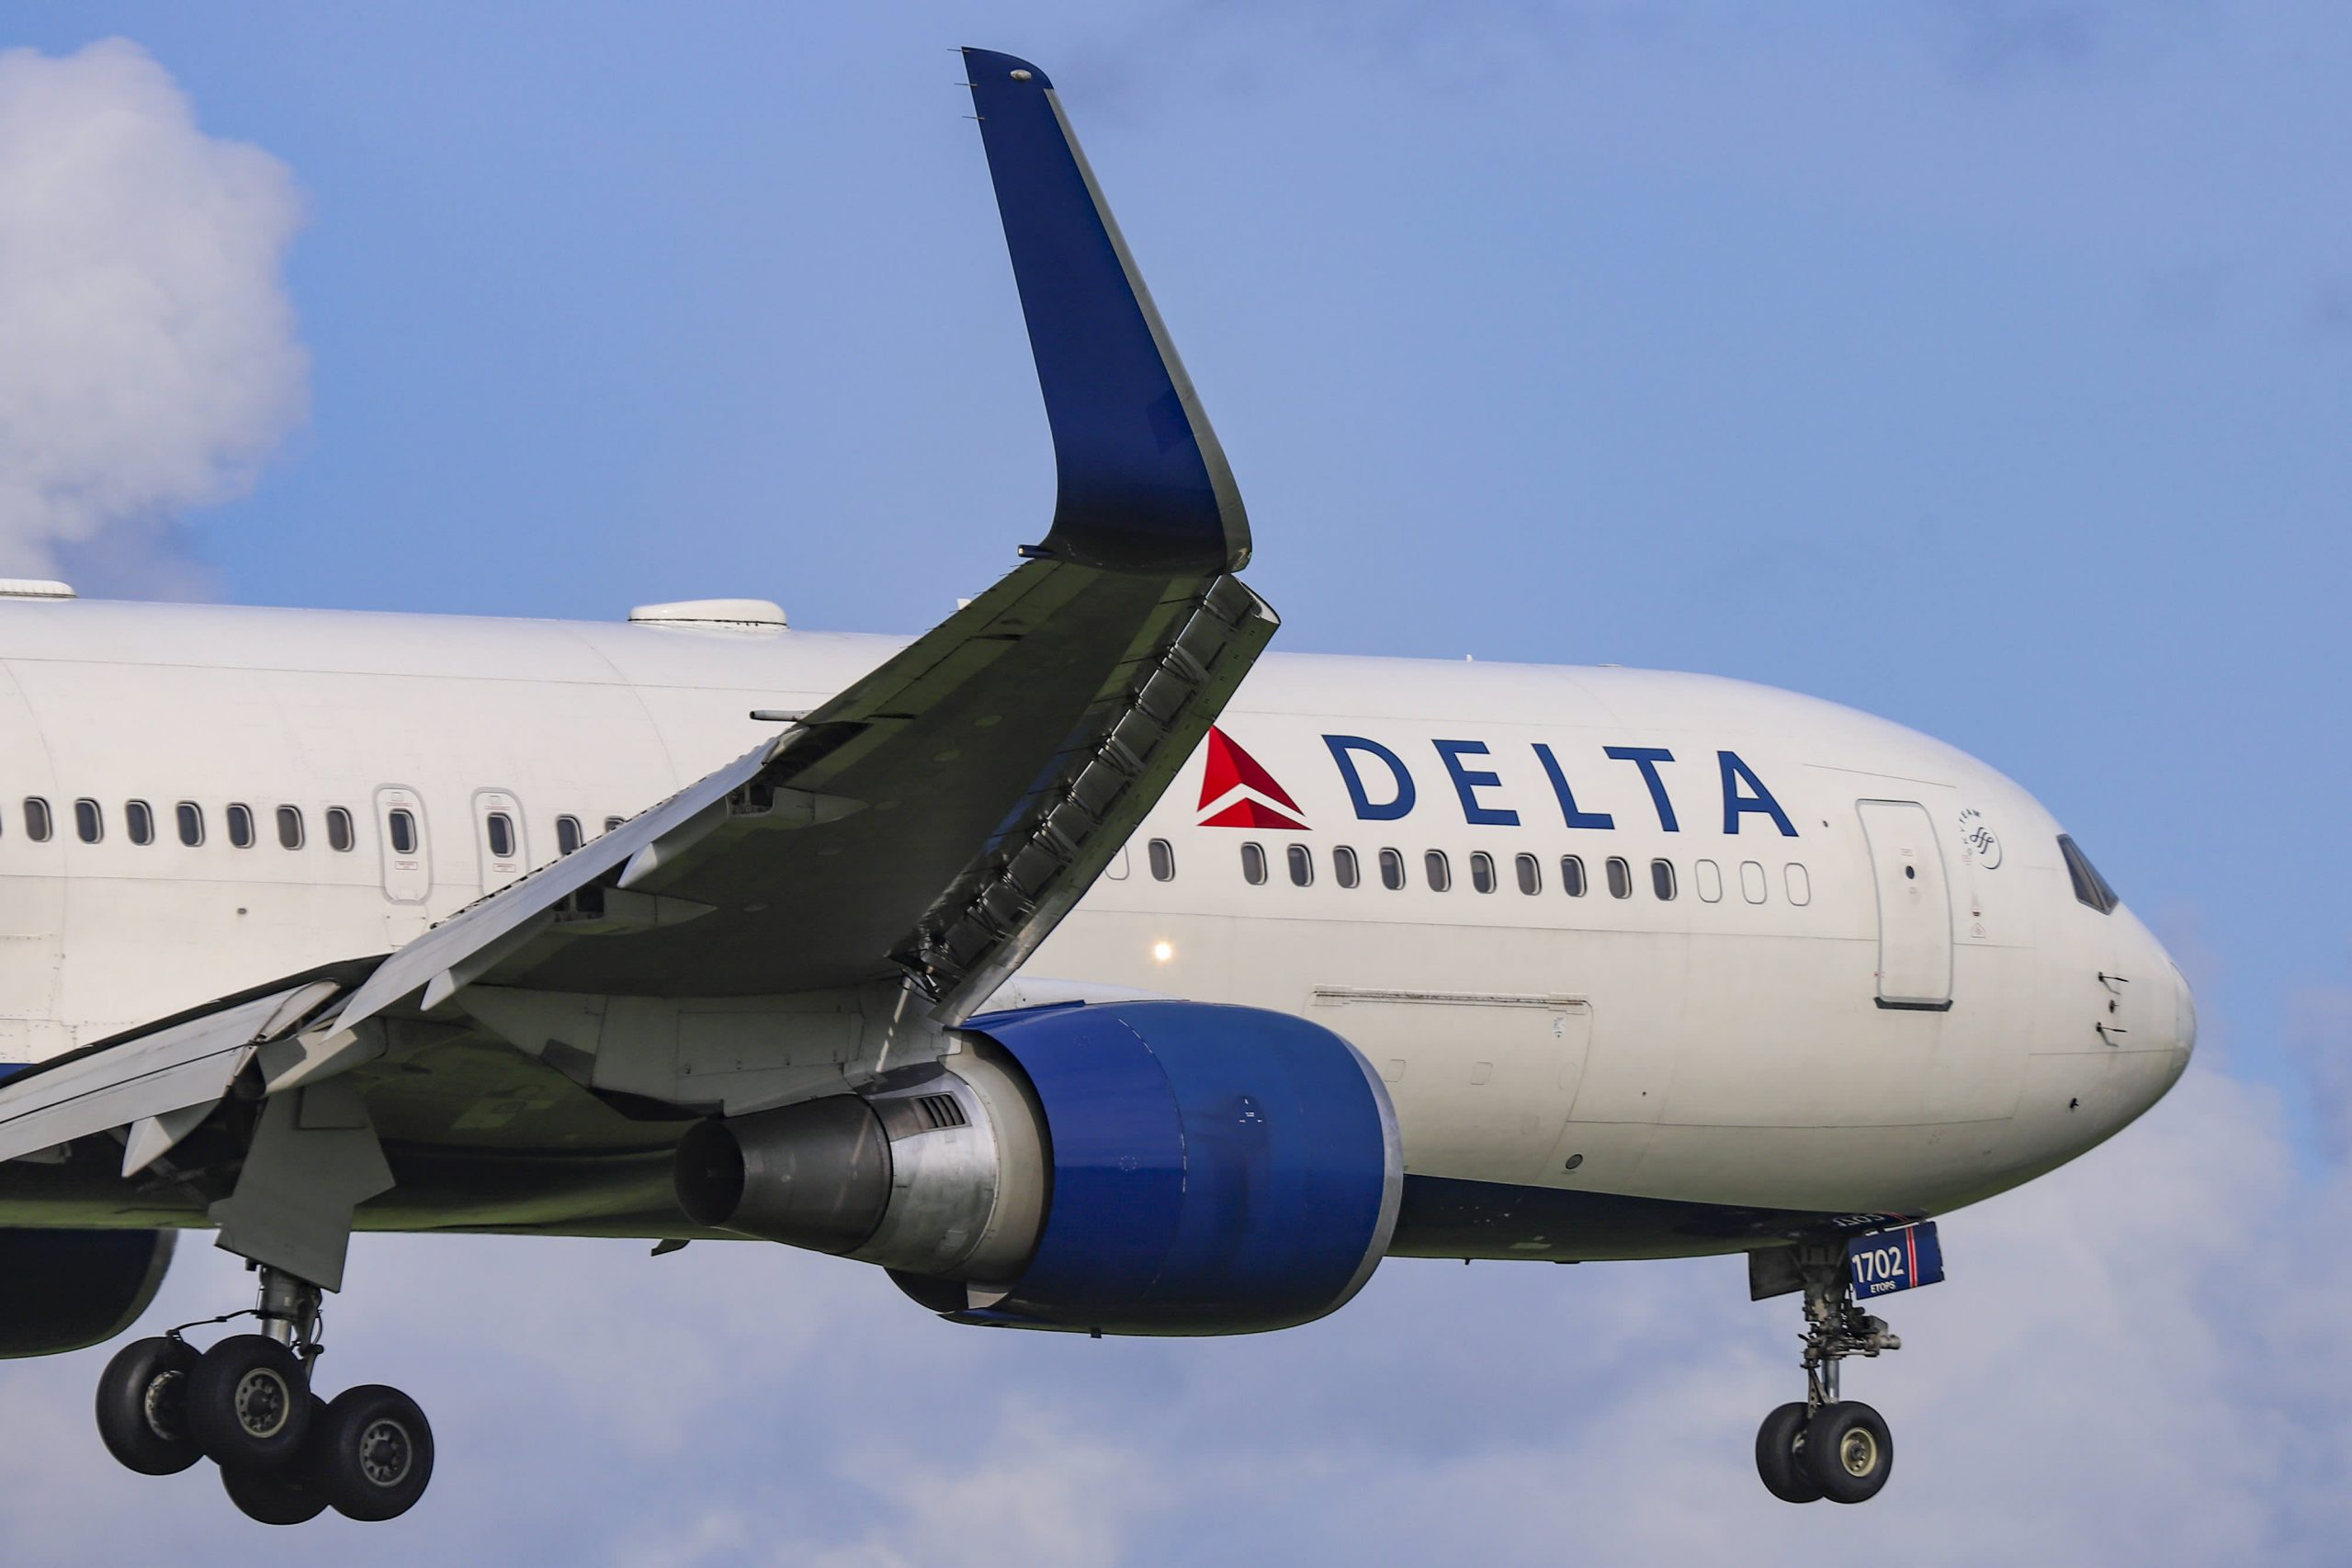 delta-british-airways-to-require-covid-tests-for-london-new-york-flights-after-cuomo-request